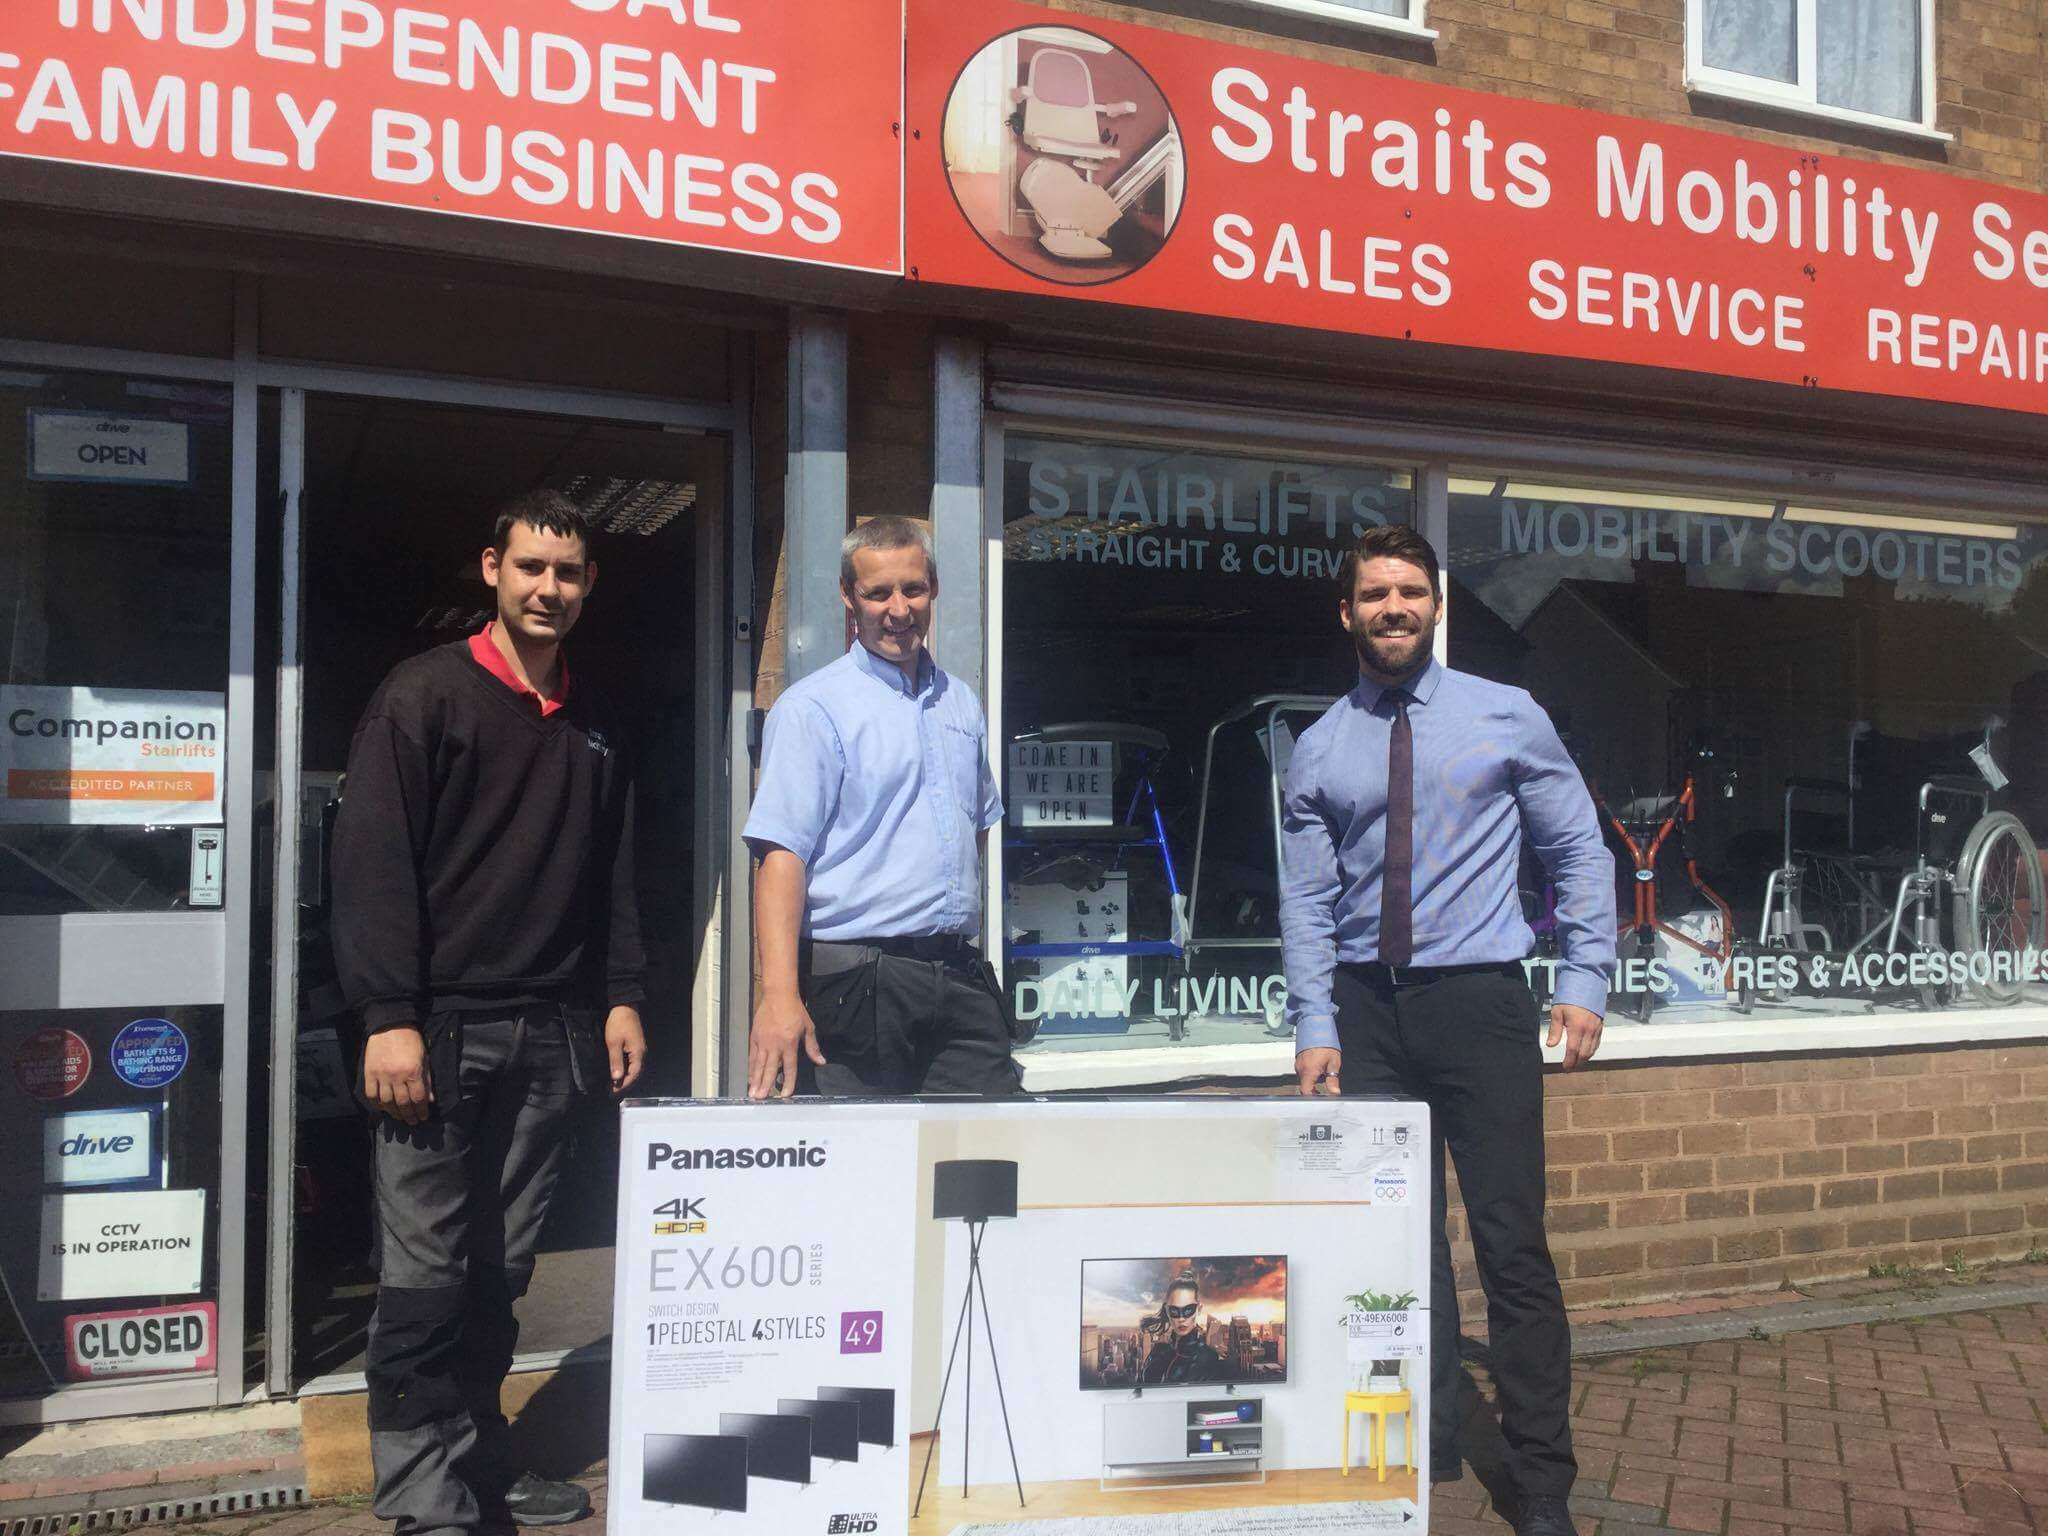 Straits Mobility Companion Stairlifts